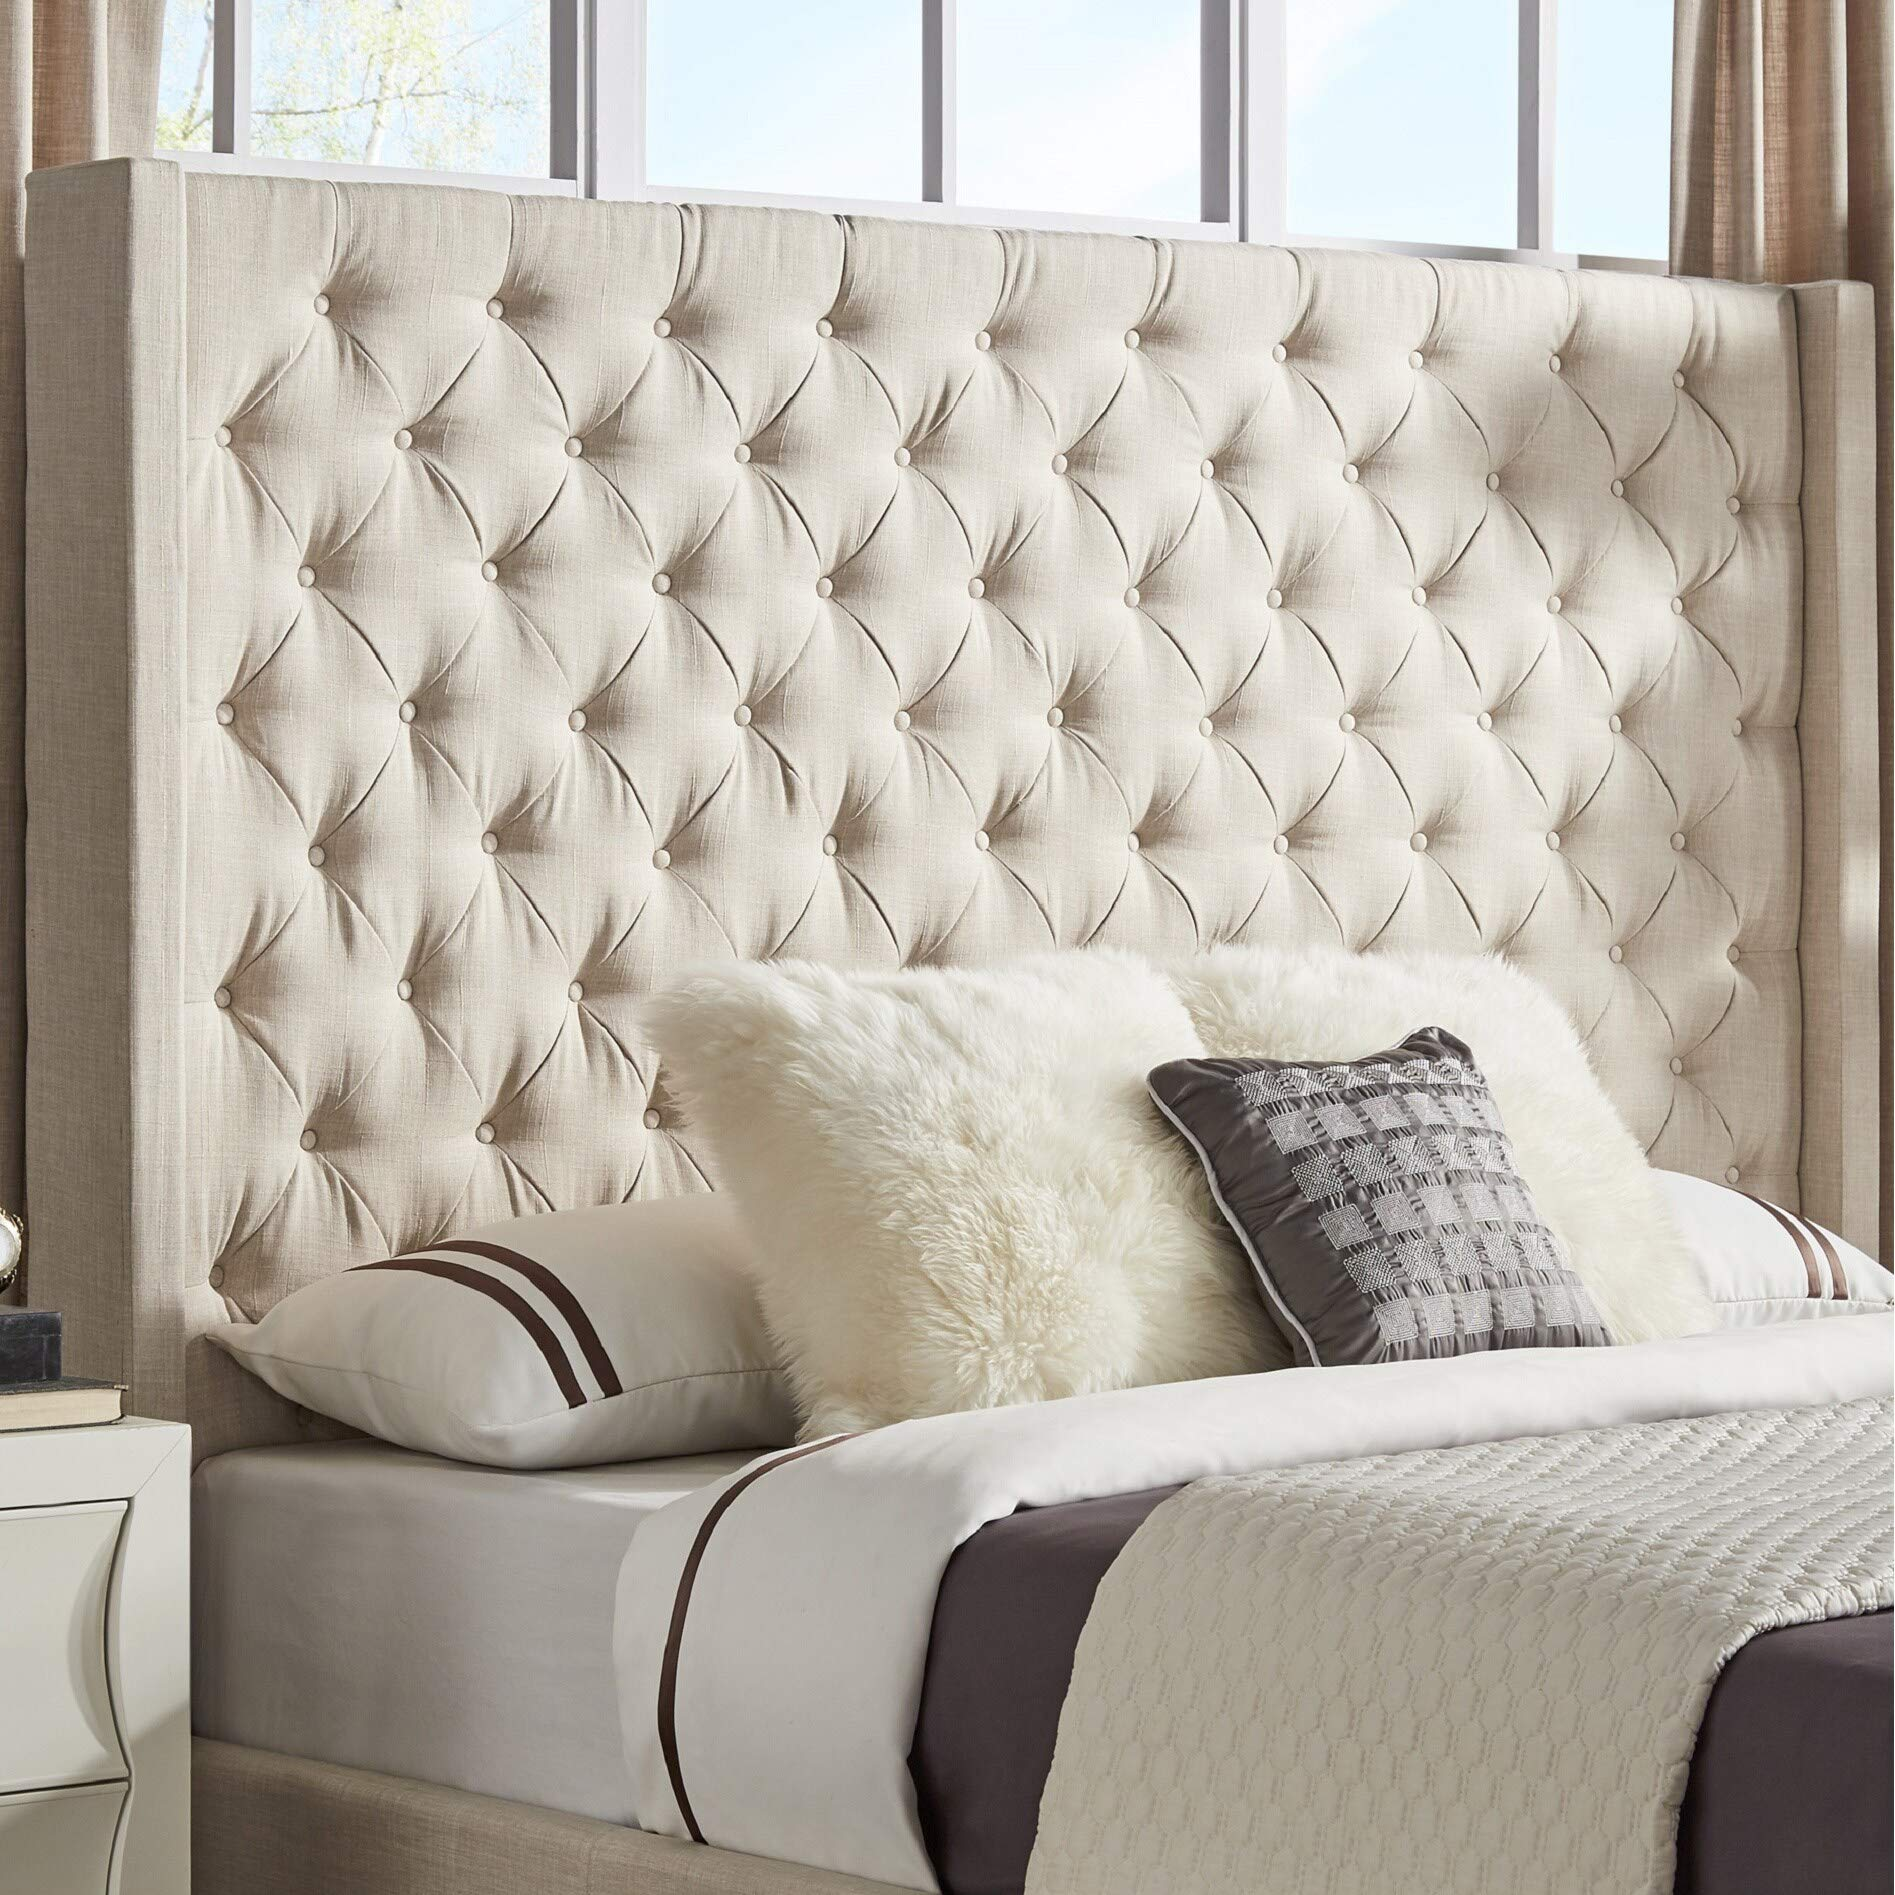 Inspire Q Naples Wingback Button Tufted Tall adboards by Artisan Beige King by Inspire Q